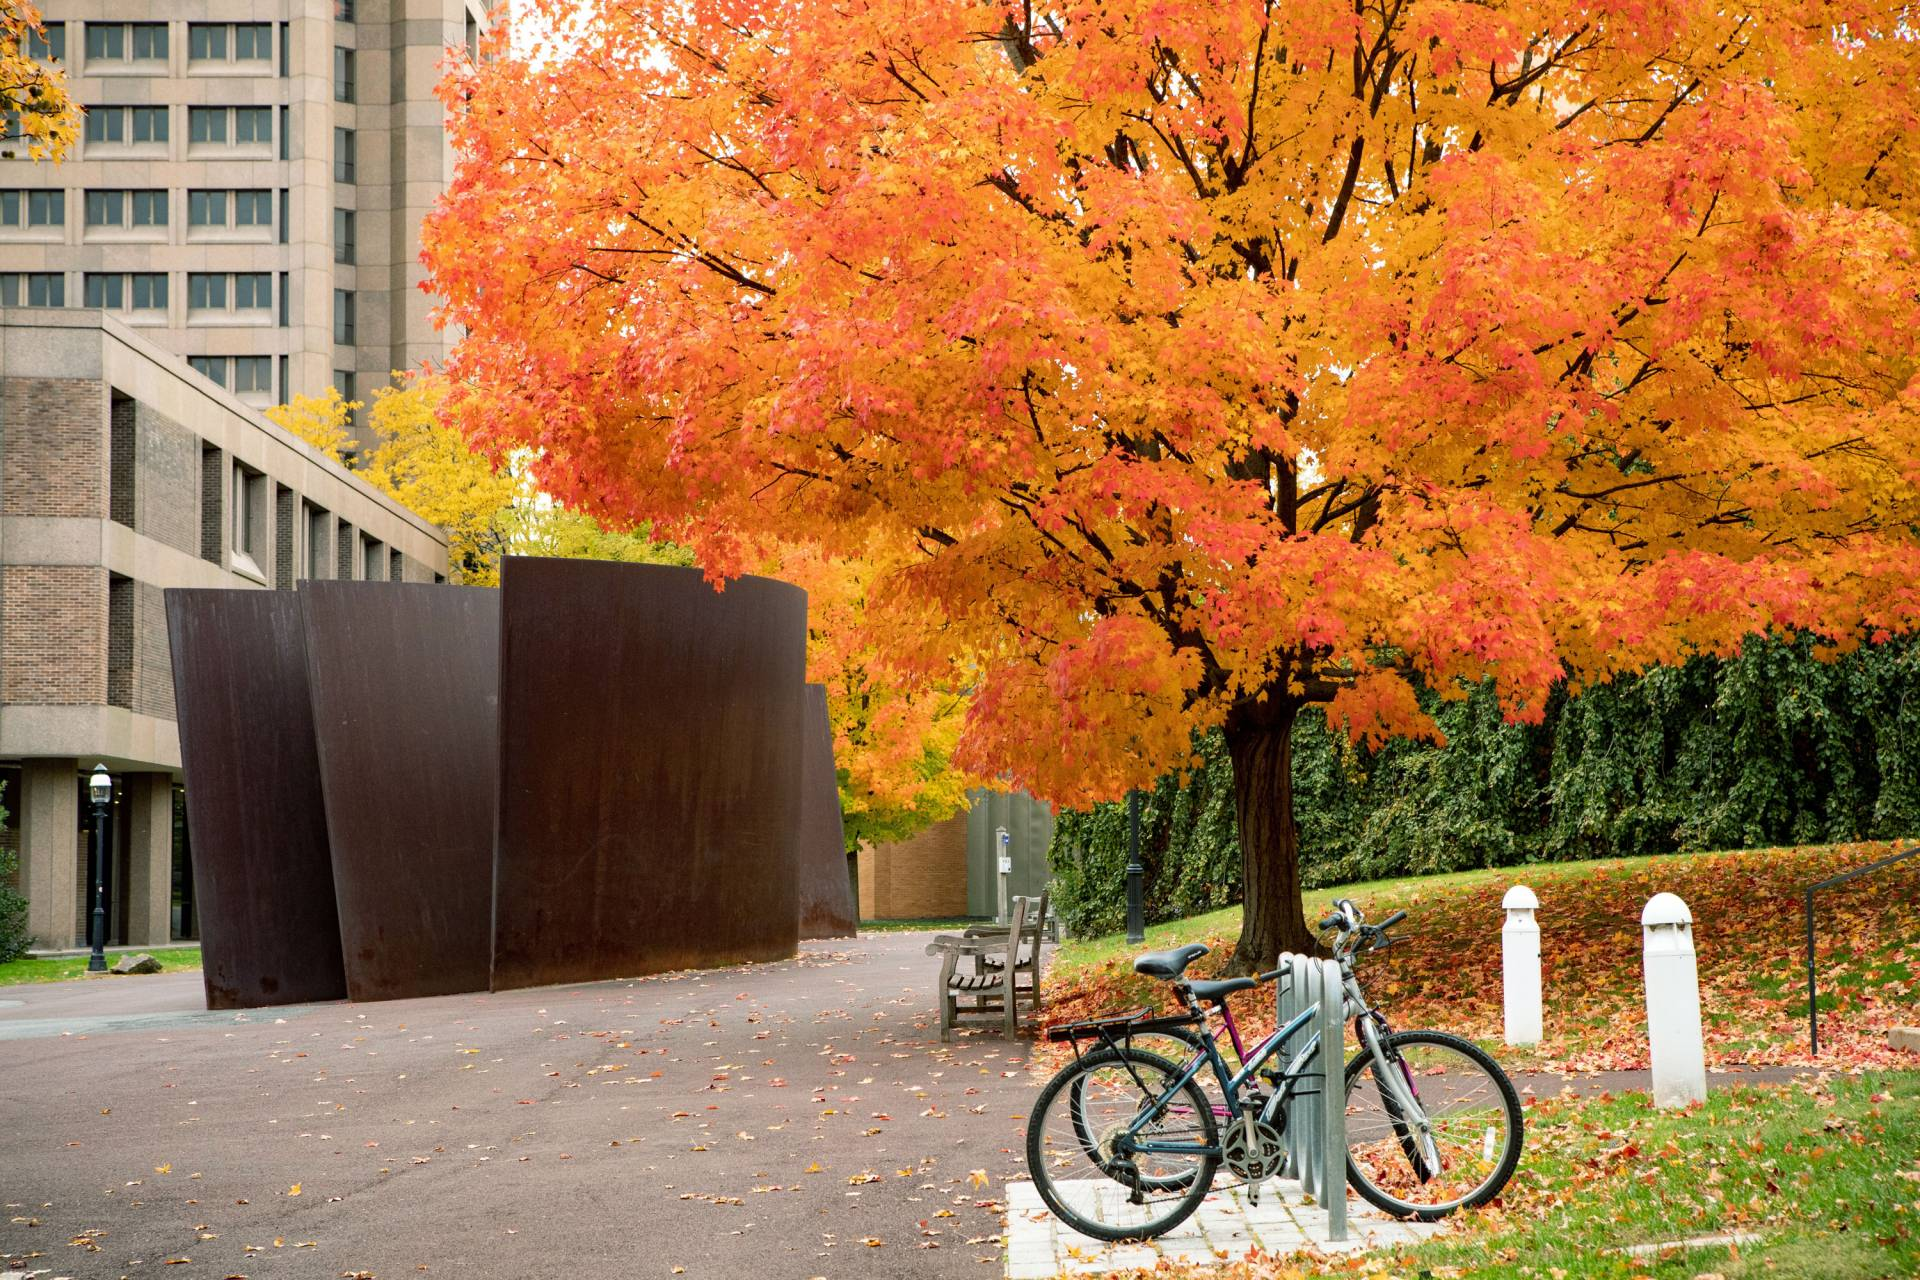 Fall beauty and Richard Serra sculpture